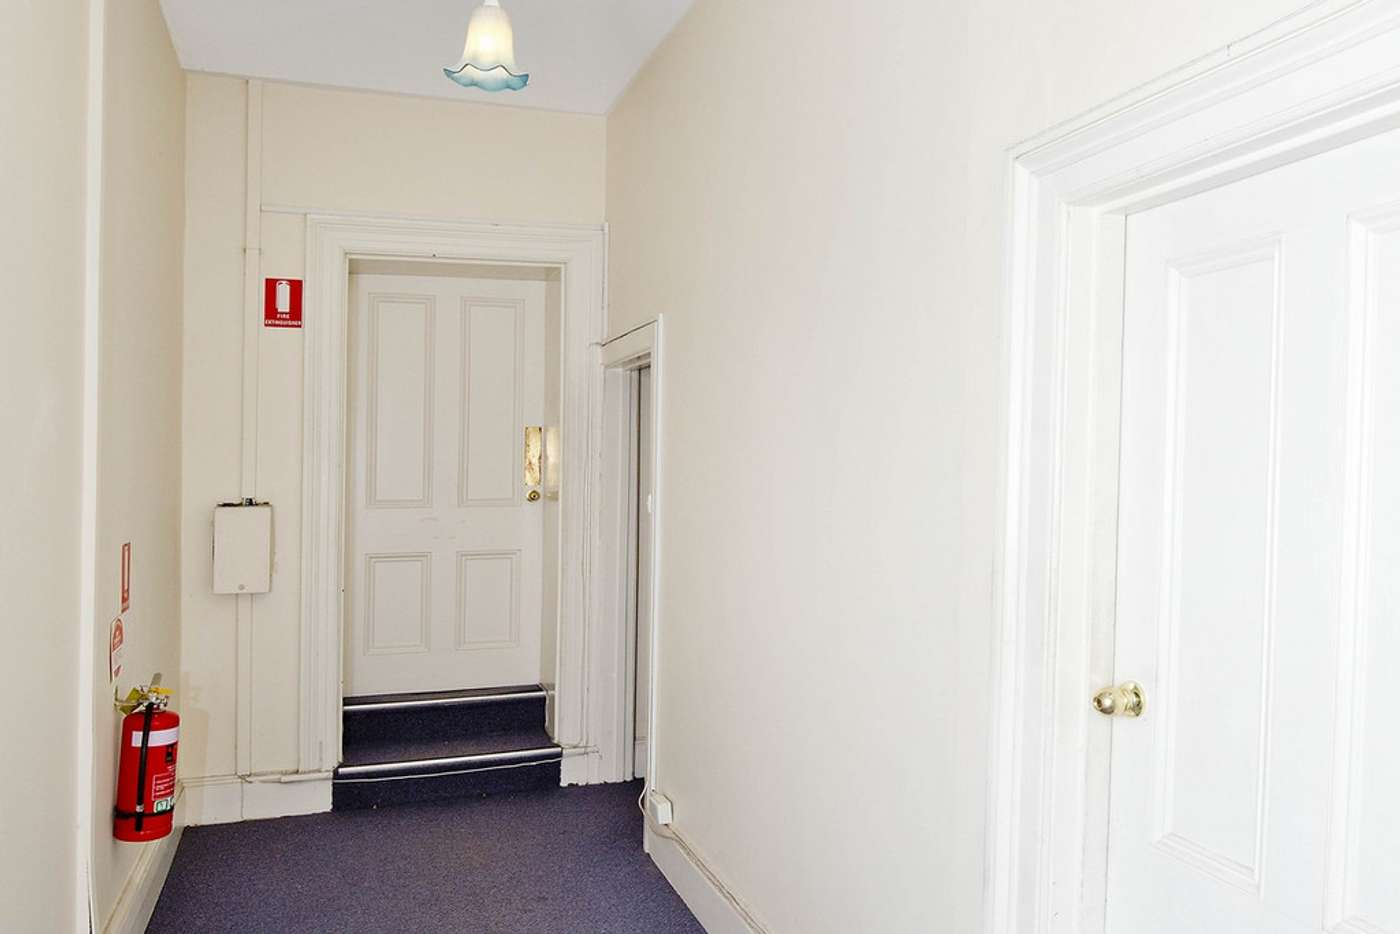 Sixth view of Homely house listing, 1 144 South Terrace, Adelaide SA 5000